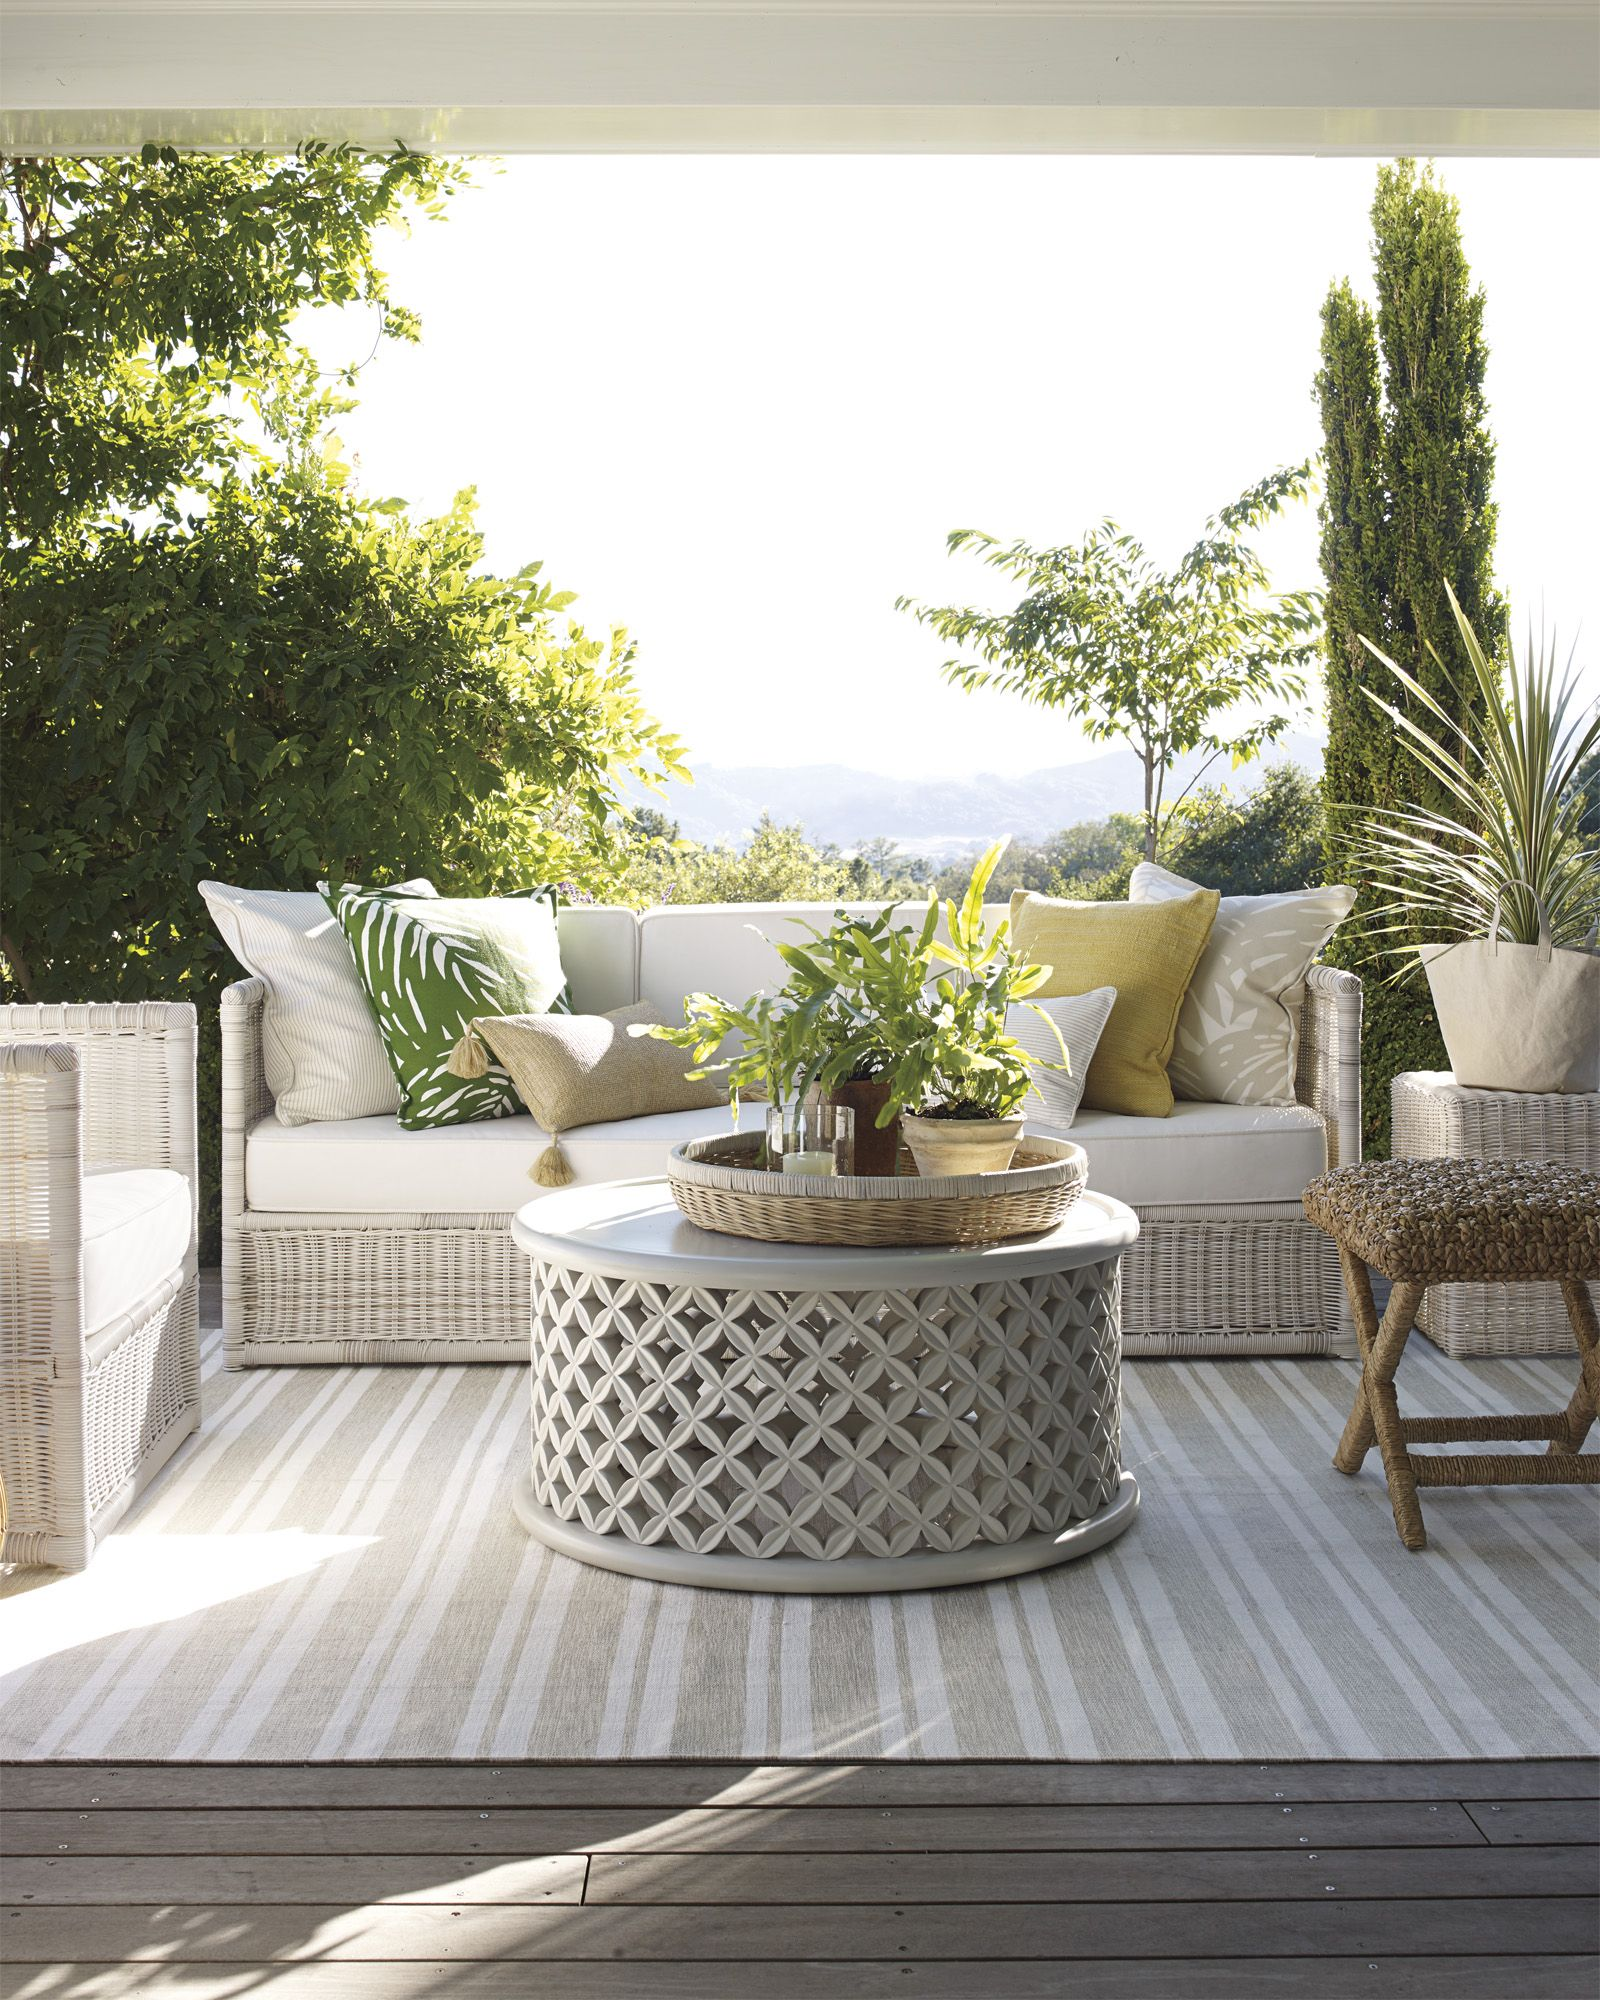 Looking forward to longer days spent on the patio | Pacifica Sofa in Driftwood via Serena & Lily